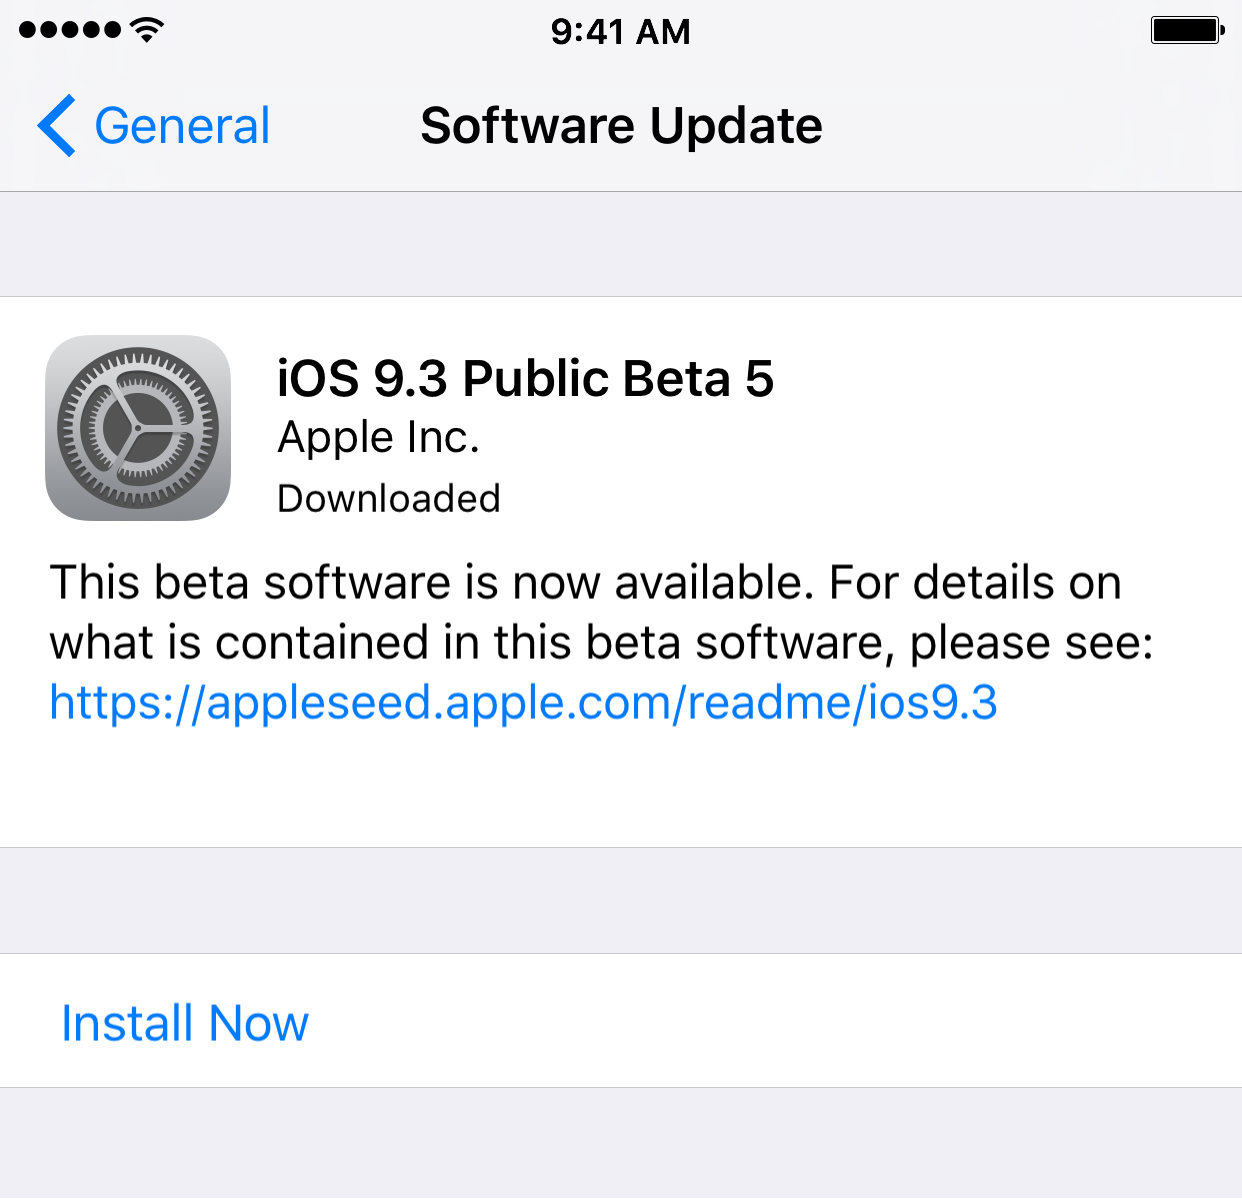 Check for updates in iOS